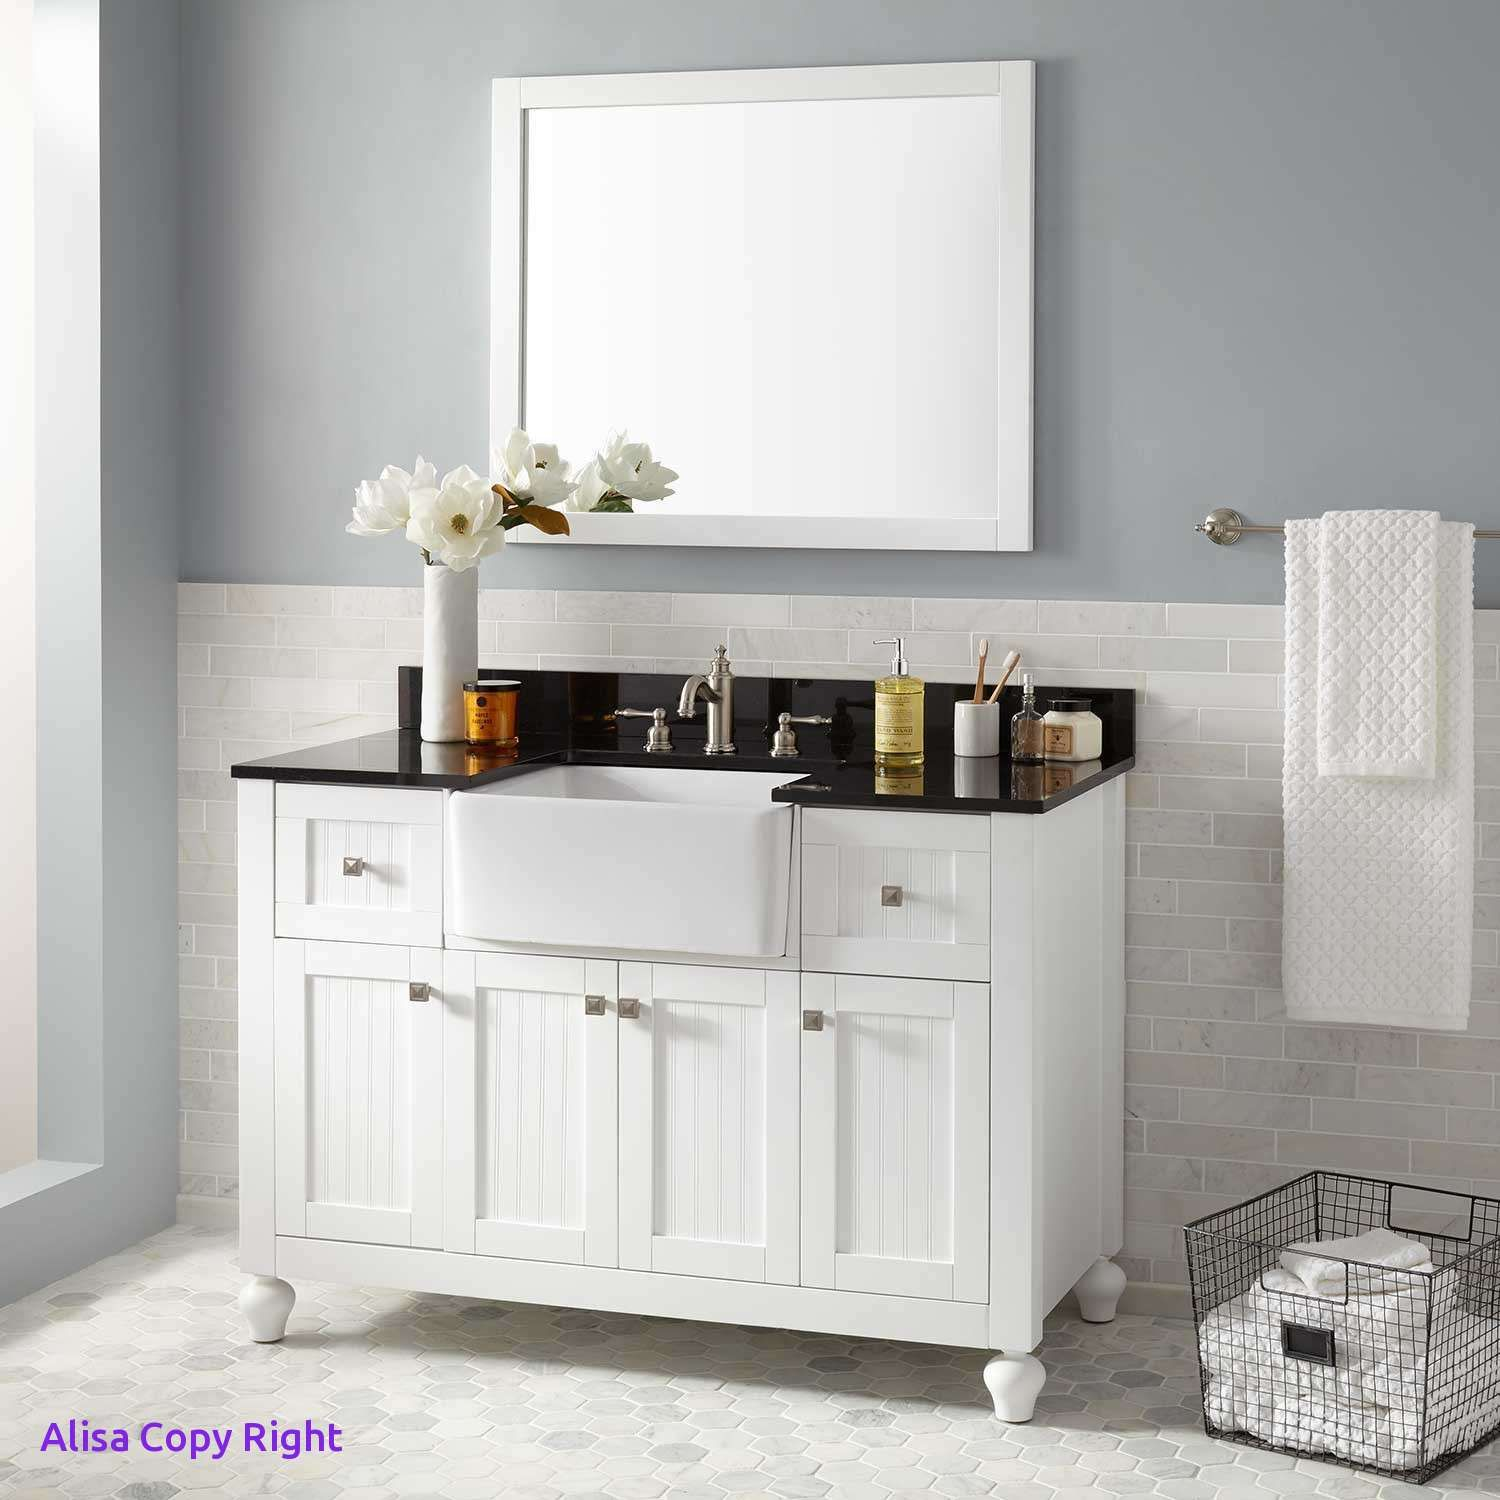 Diy Bathroom Vanity Bathroom farmhouse style, Farmhouse